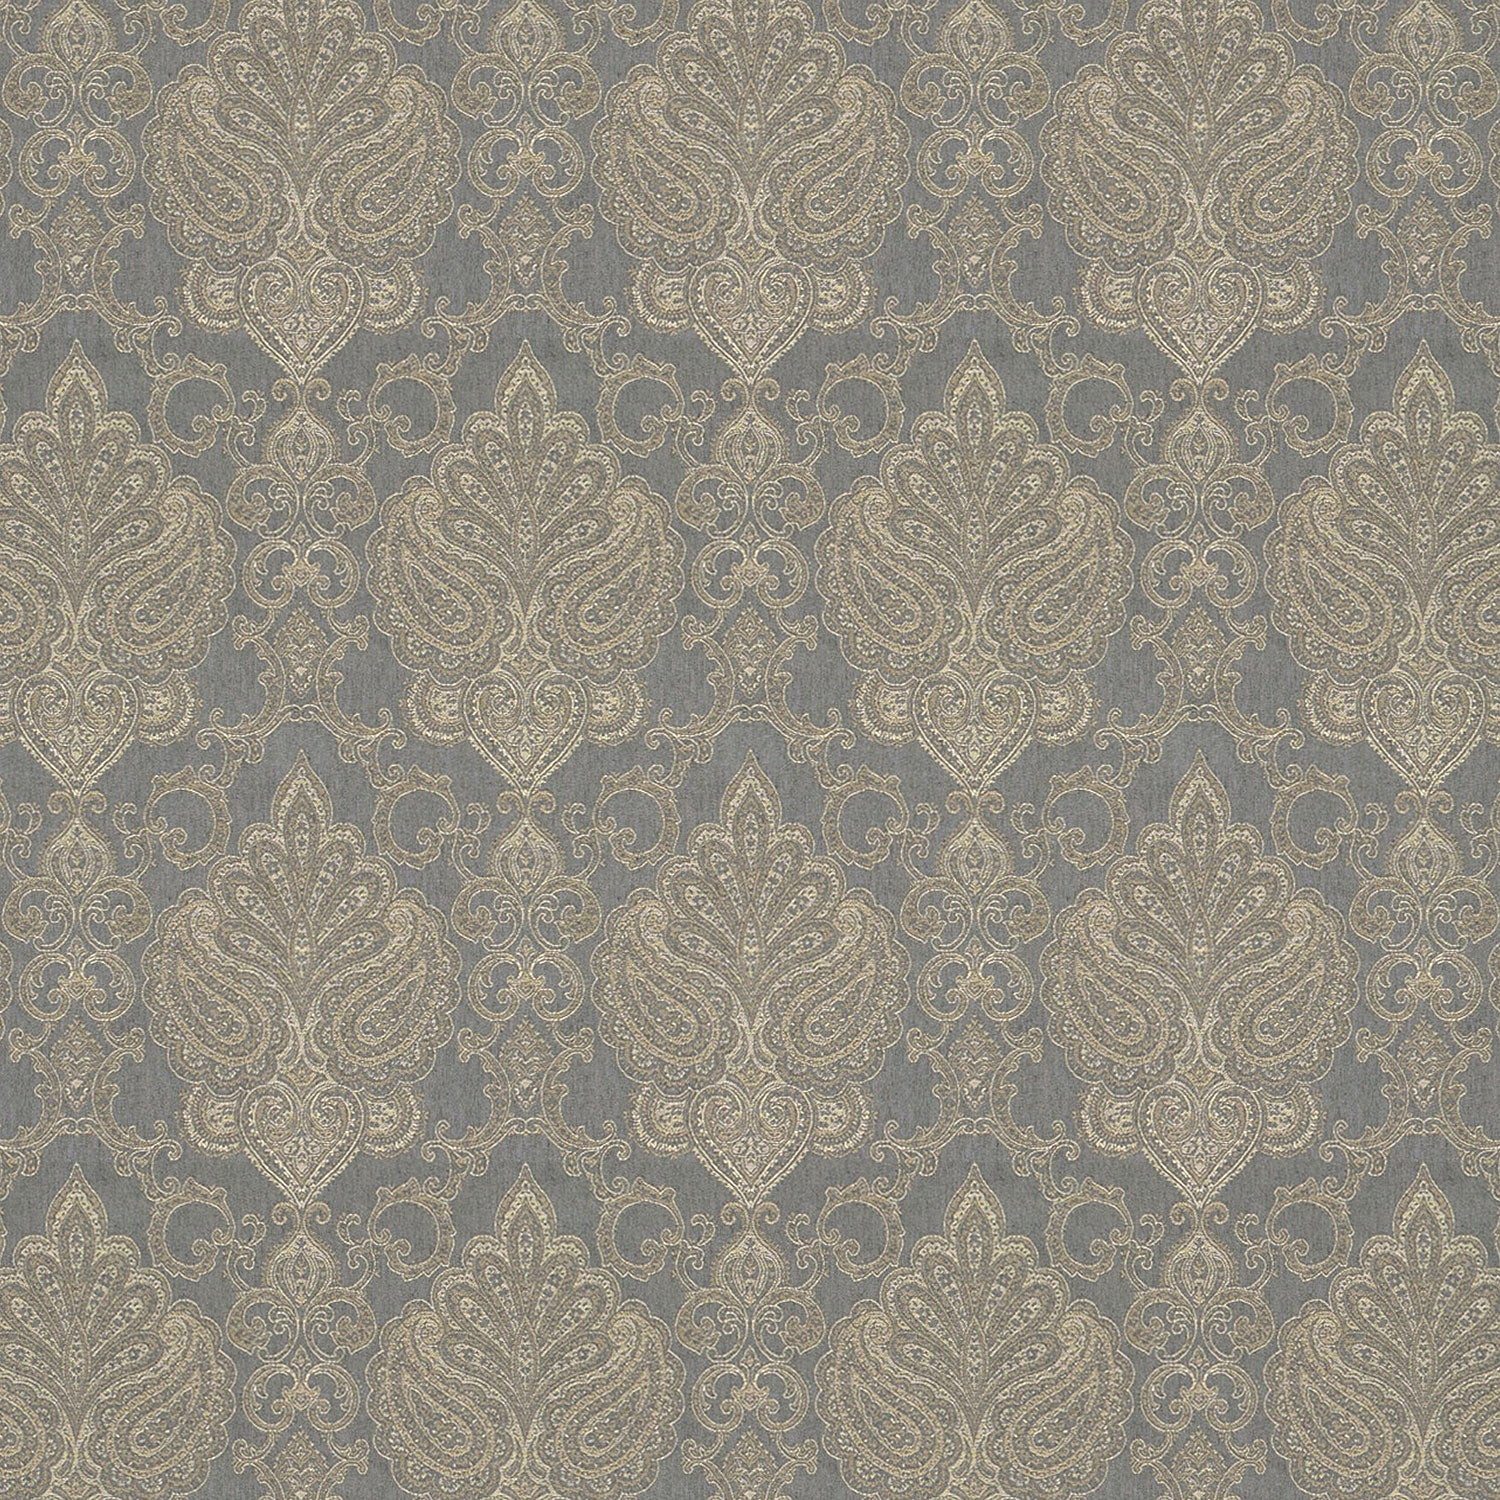 Blue fabric suitable for curtains and upholstery with neutral woven large scale damask design.